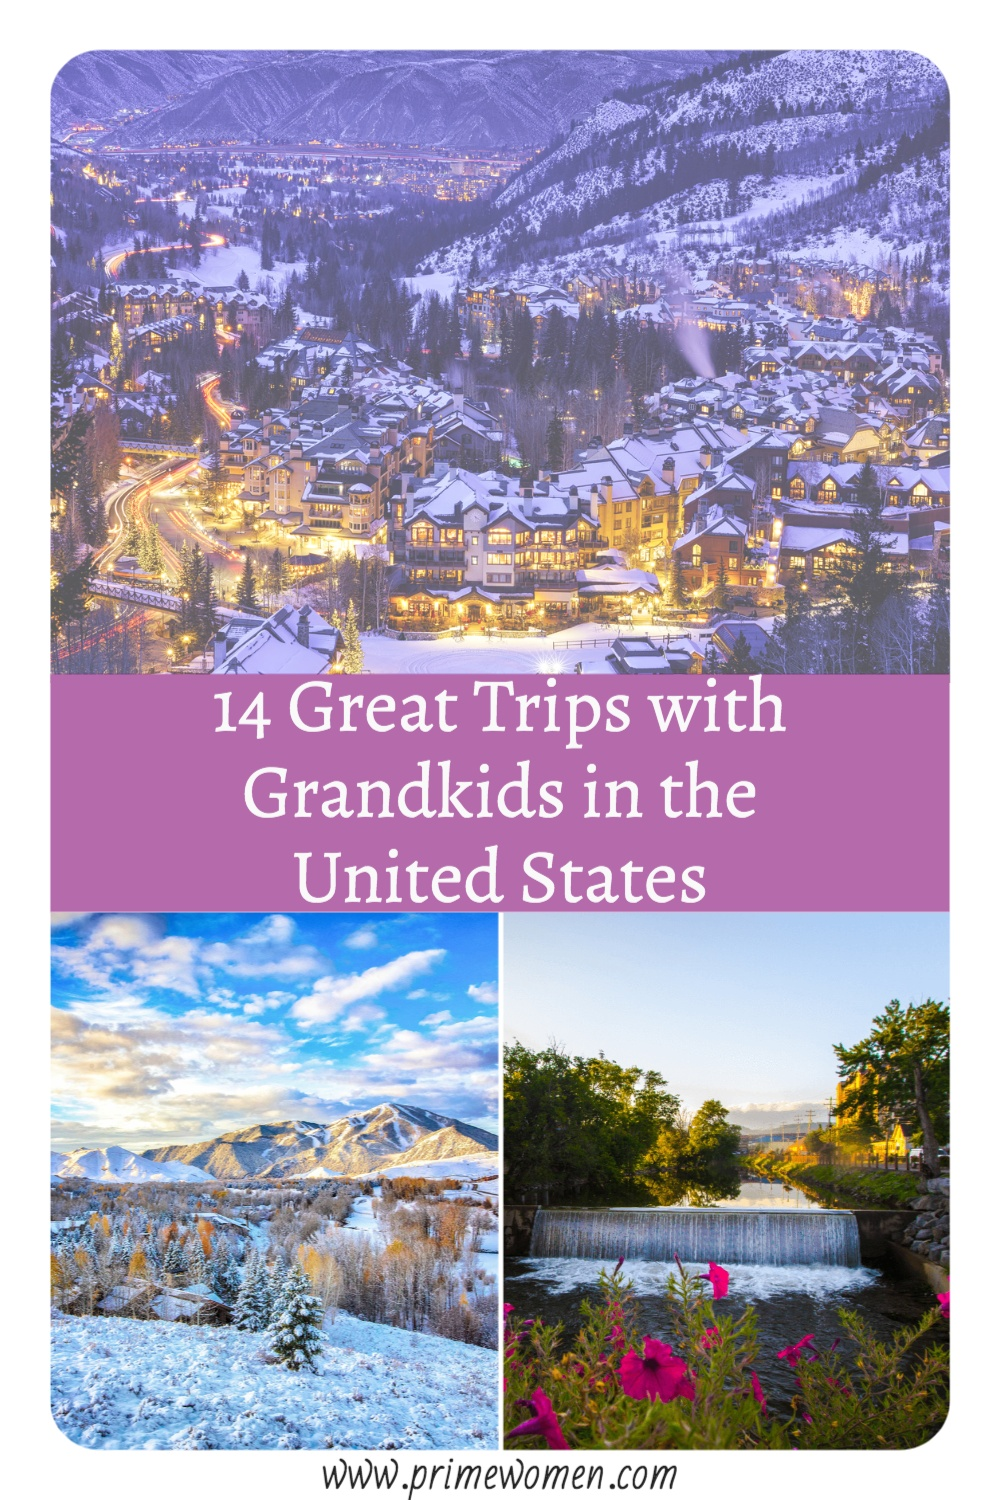 14-Great-Trips-with-Grandkids-in-the-United-States-